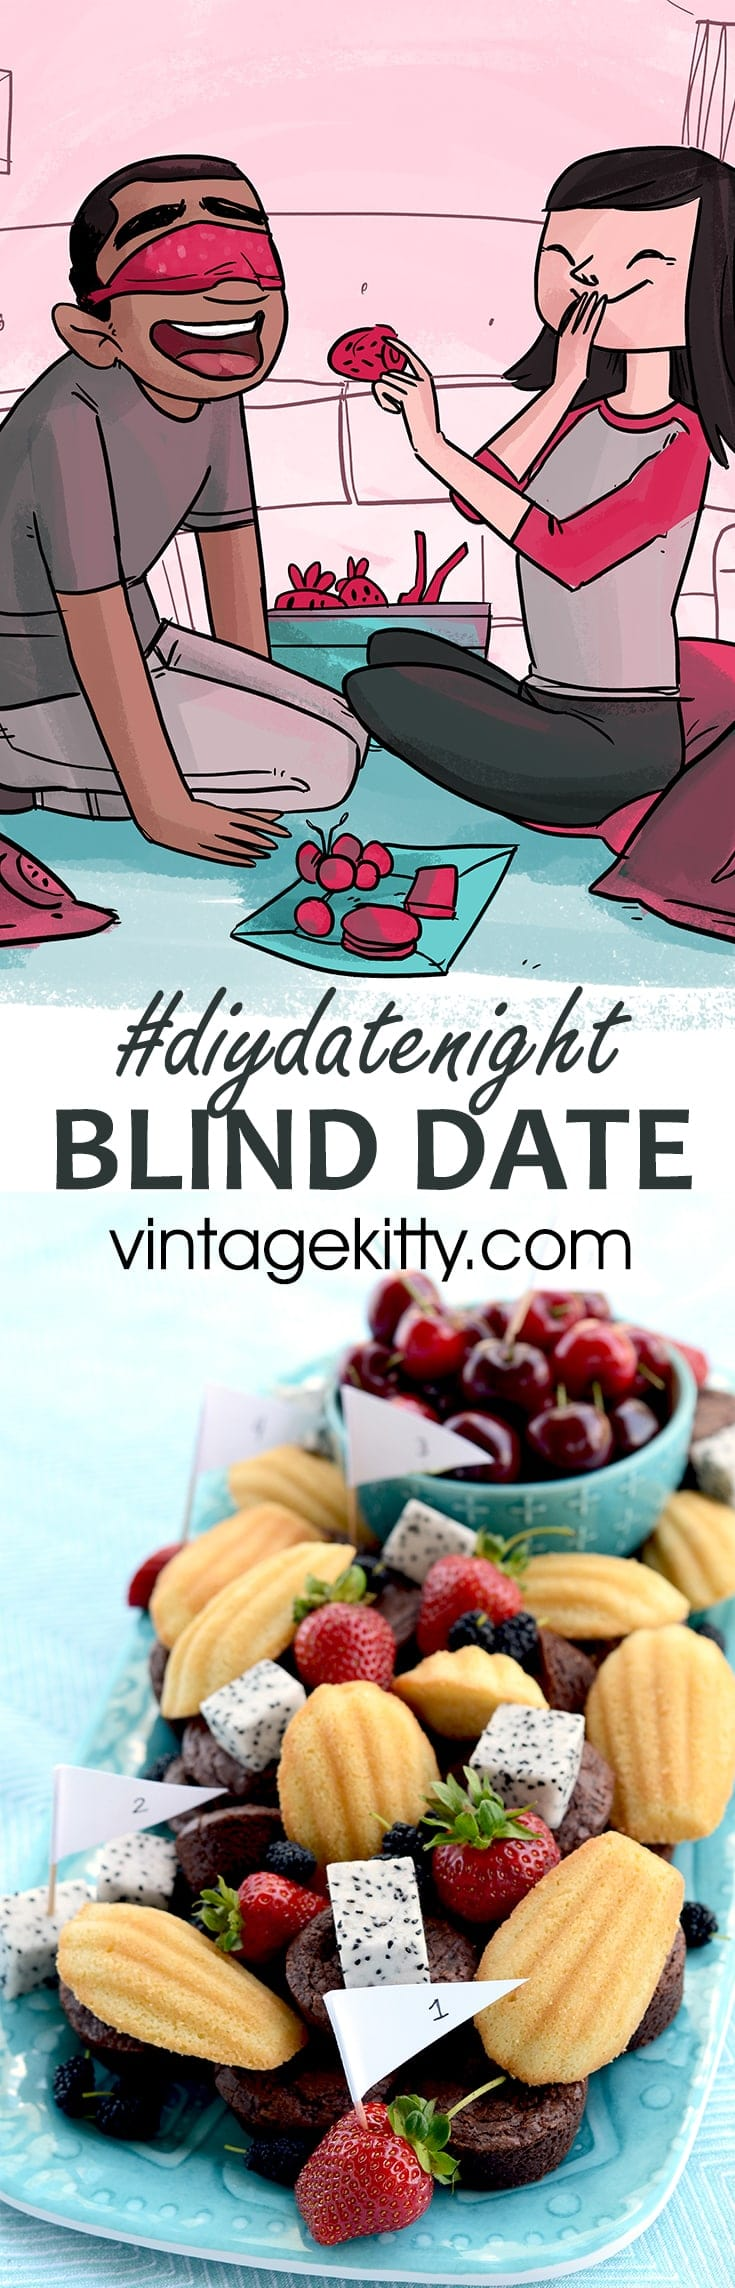 Blind Date #diydatenight